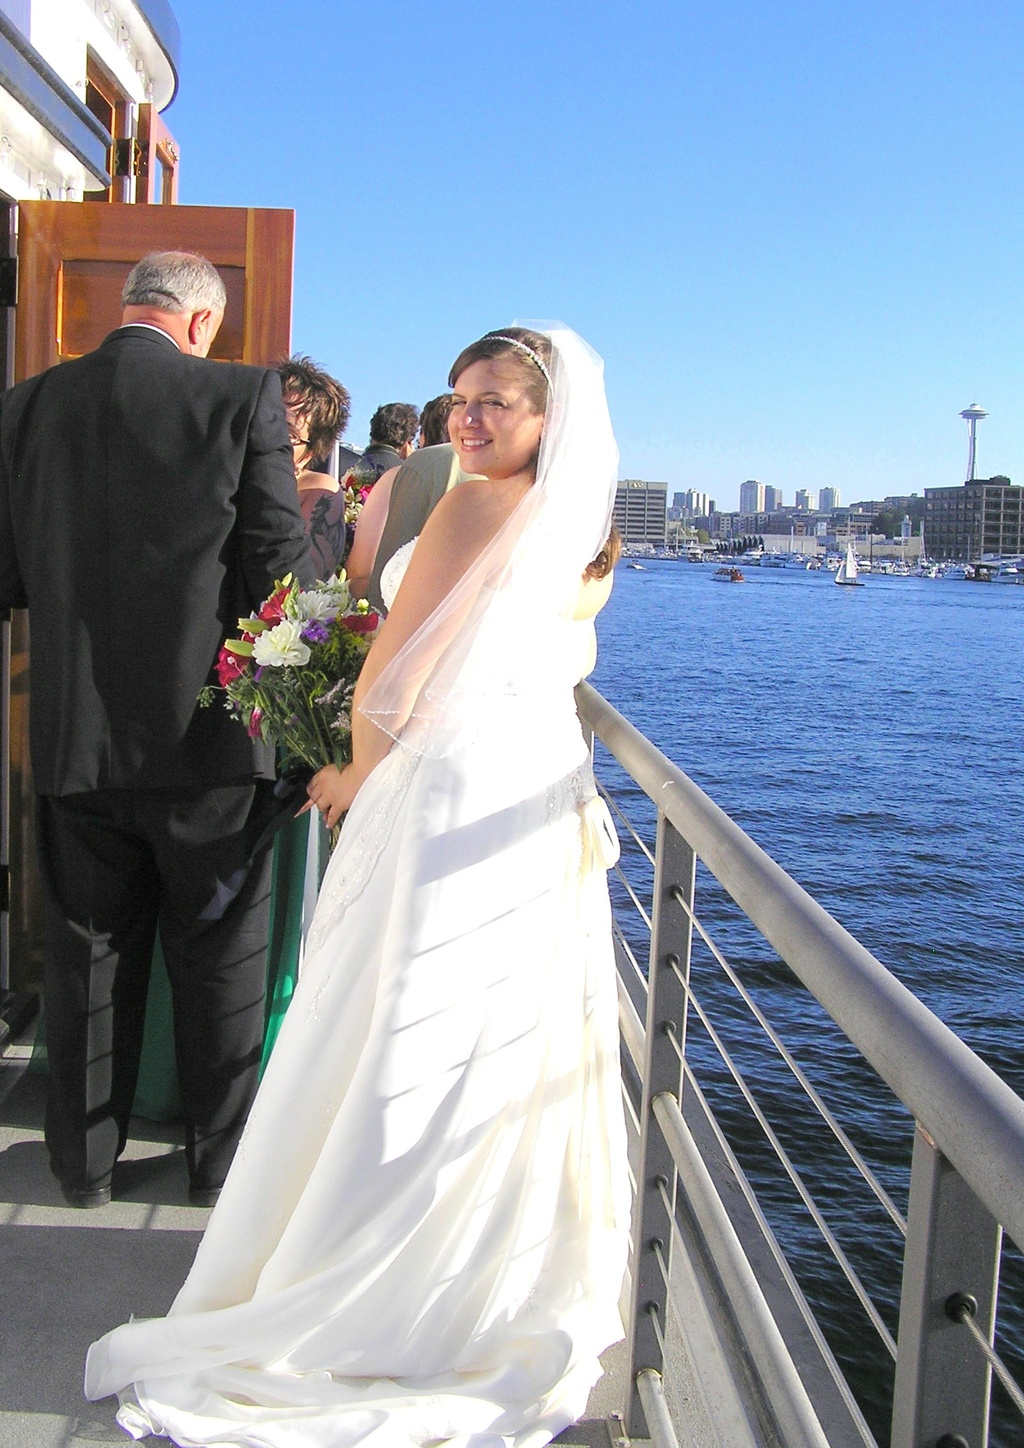 The bride gets ready to walk down the aisle on a ship.